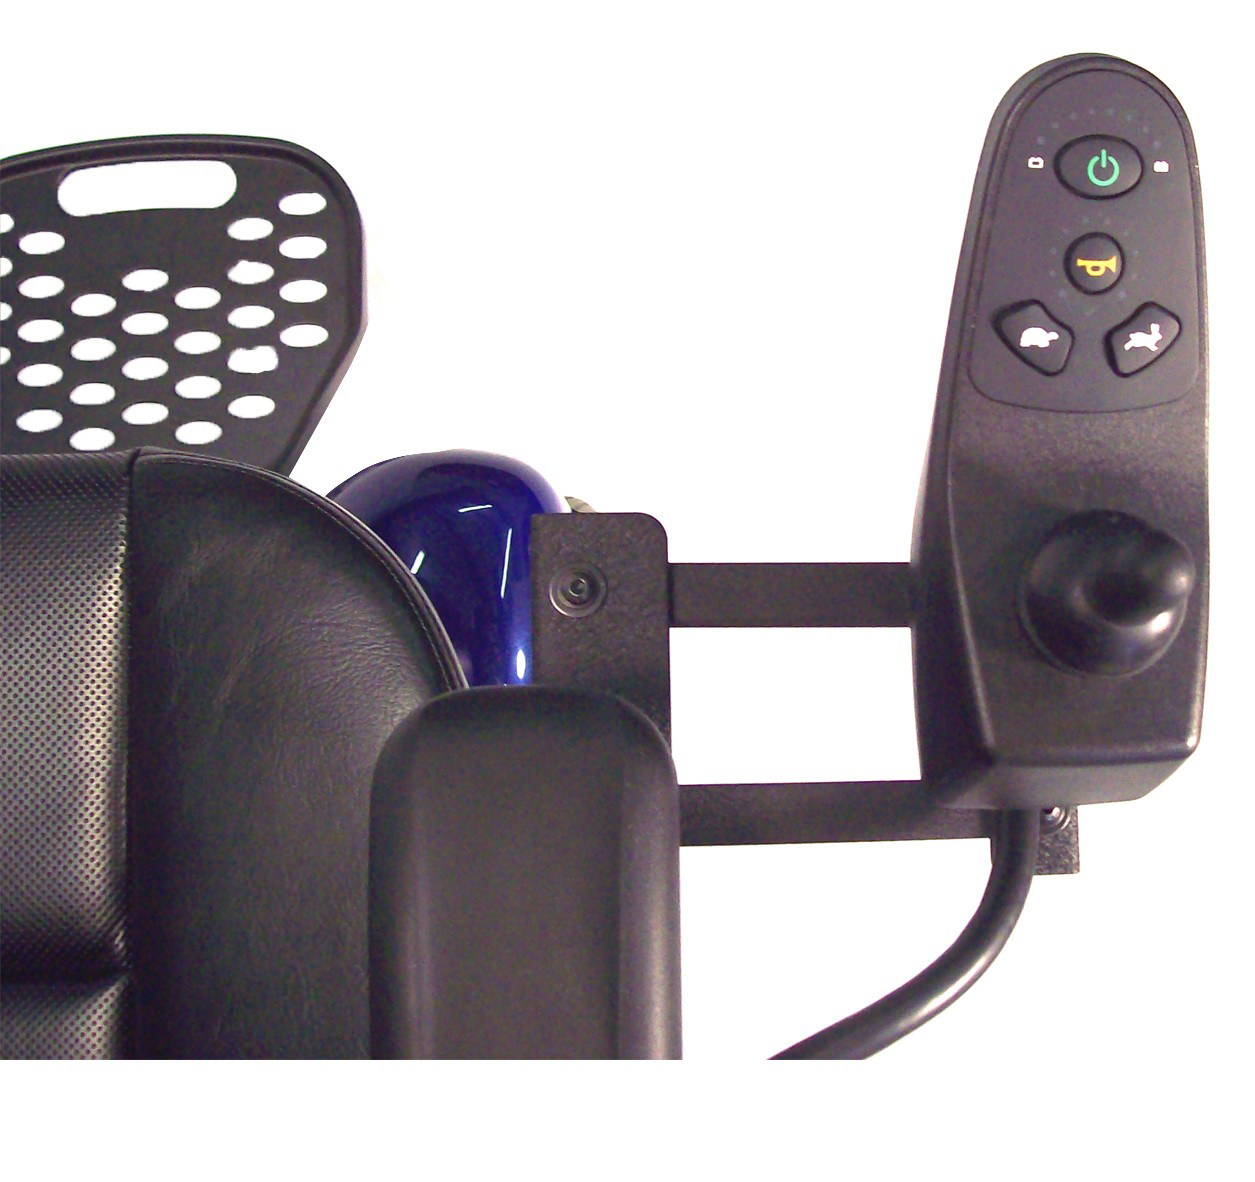 Drive Medical - Swingaway Controller Arm for Power Wheelchairs